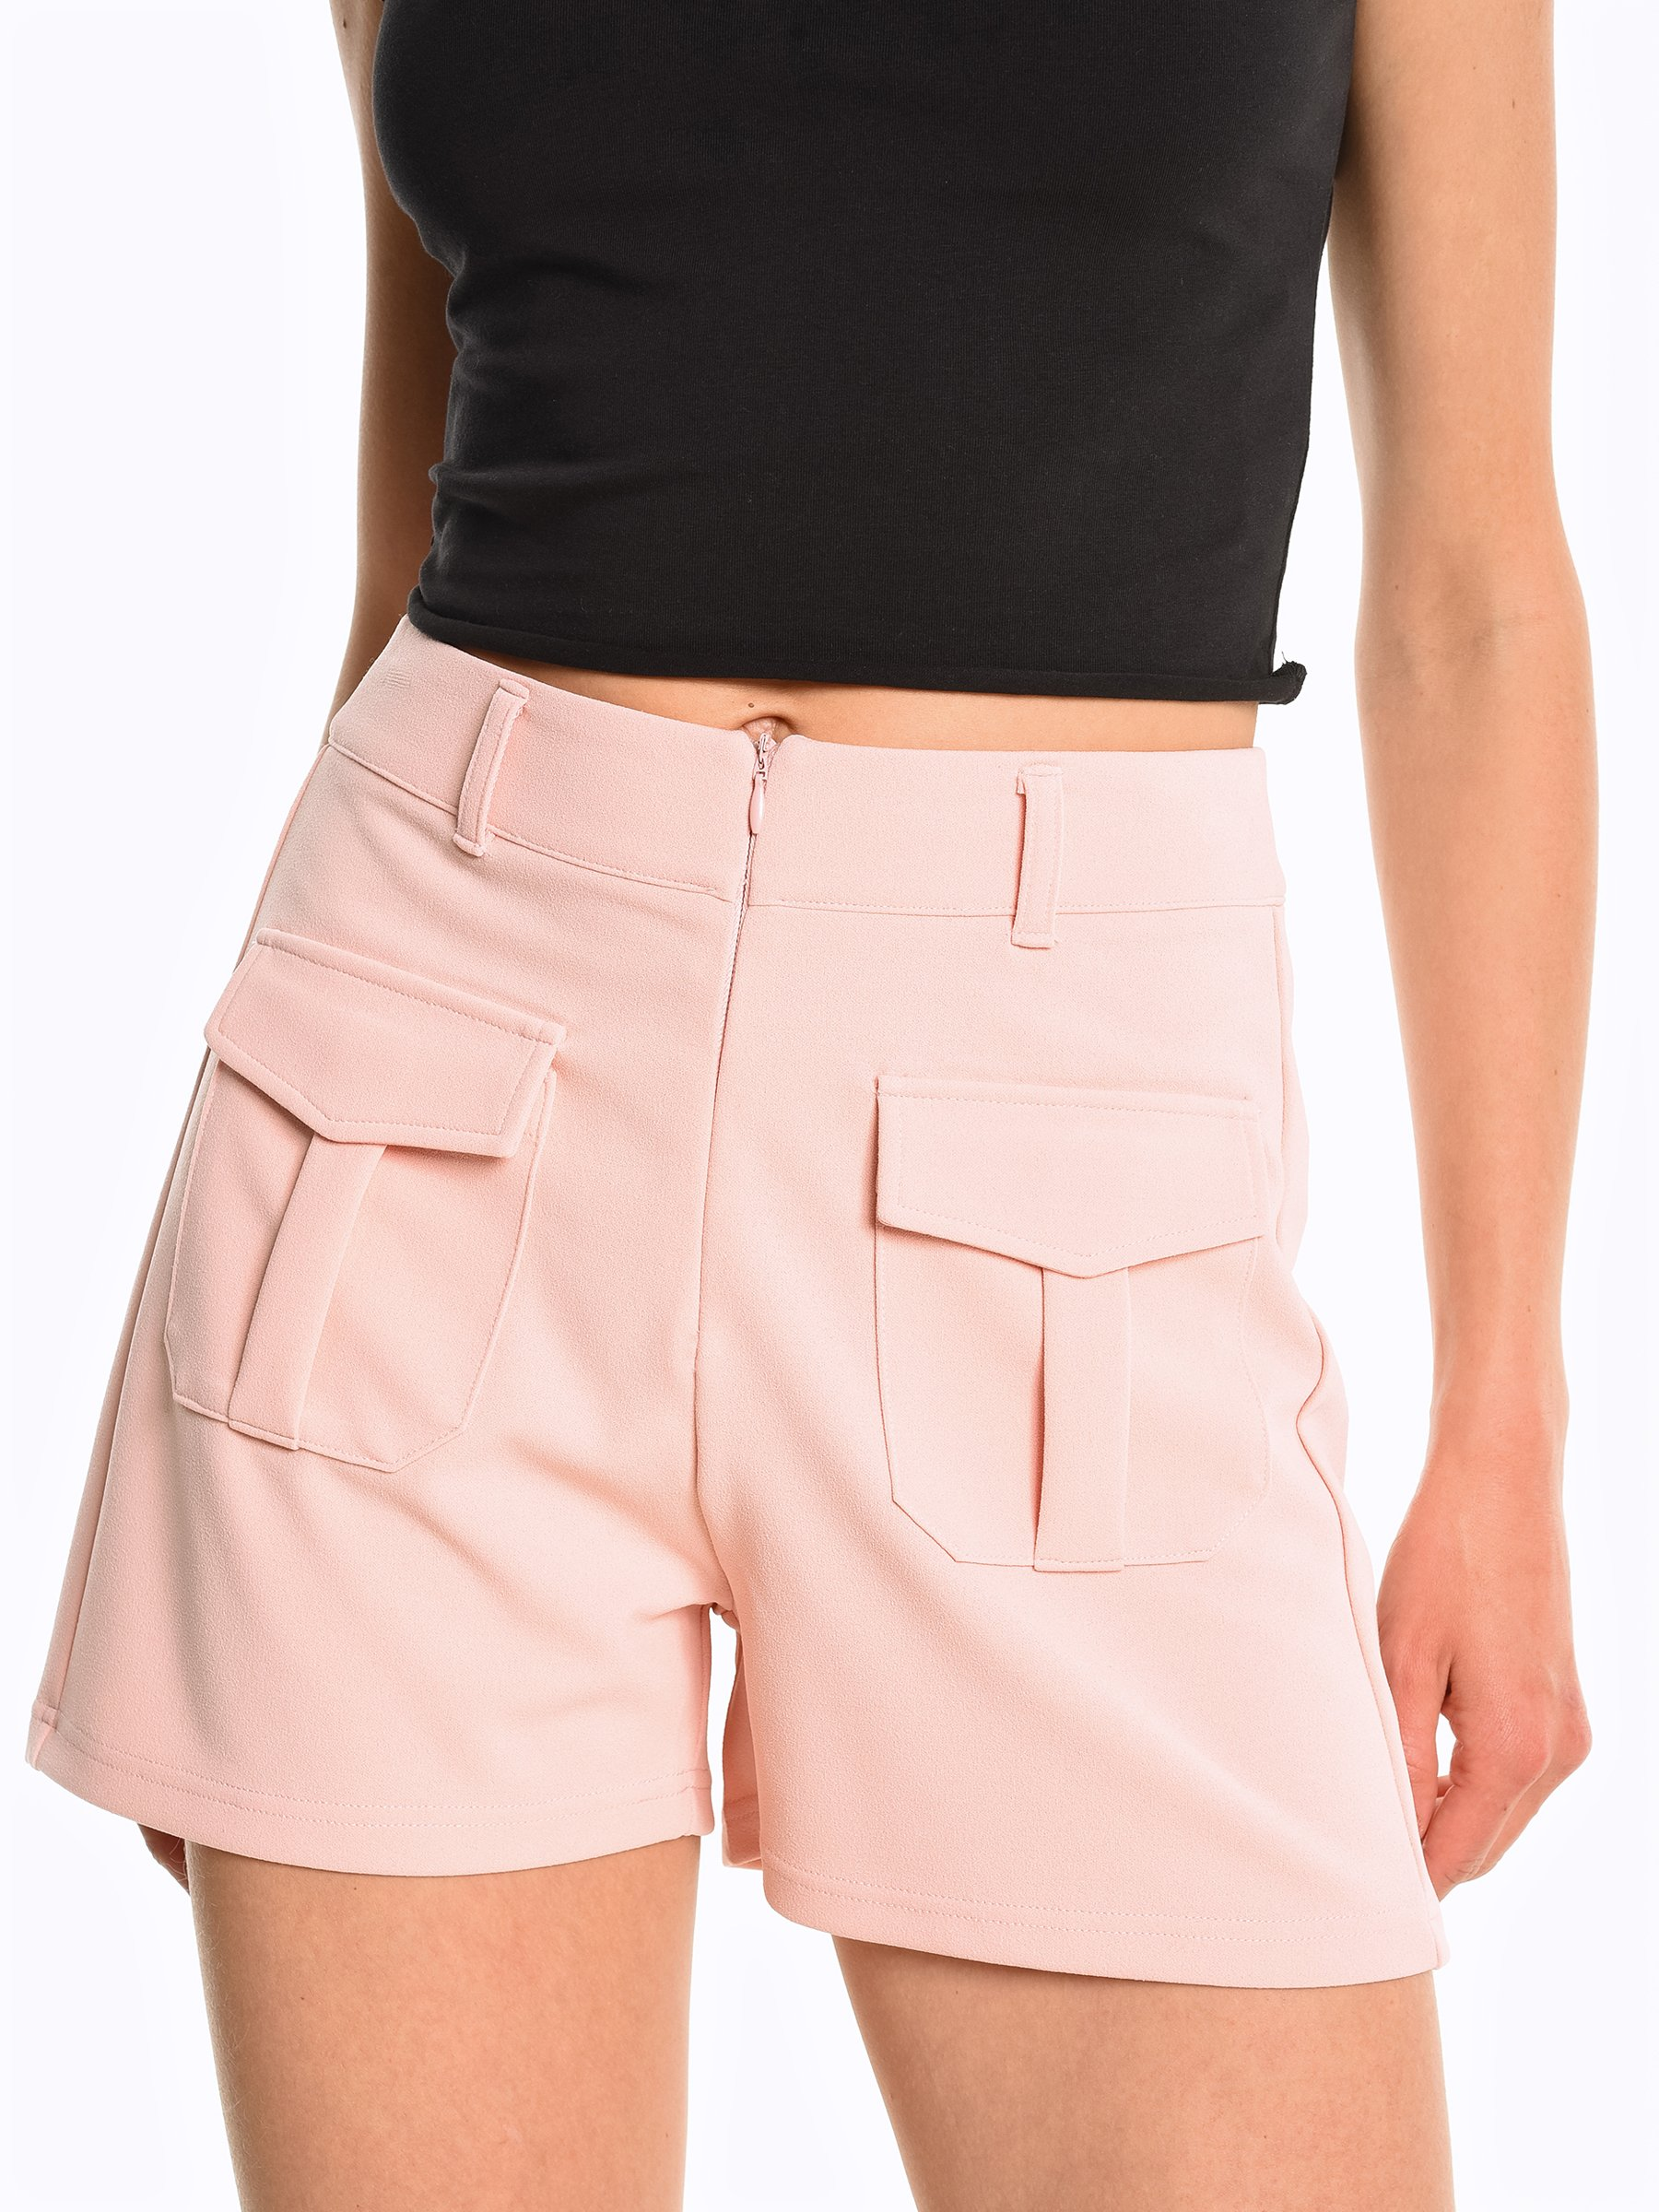 Cotton Fashion Shorts